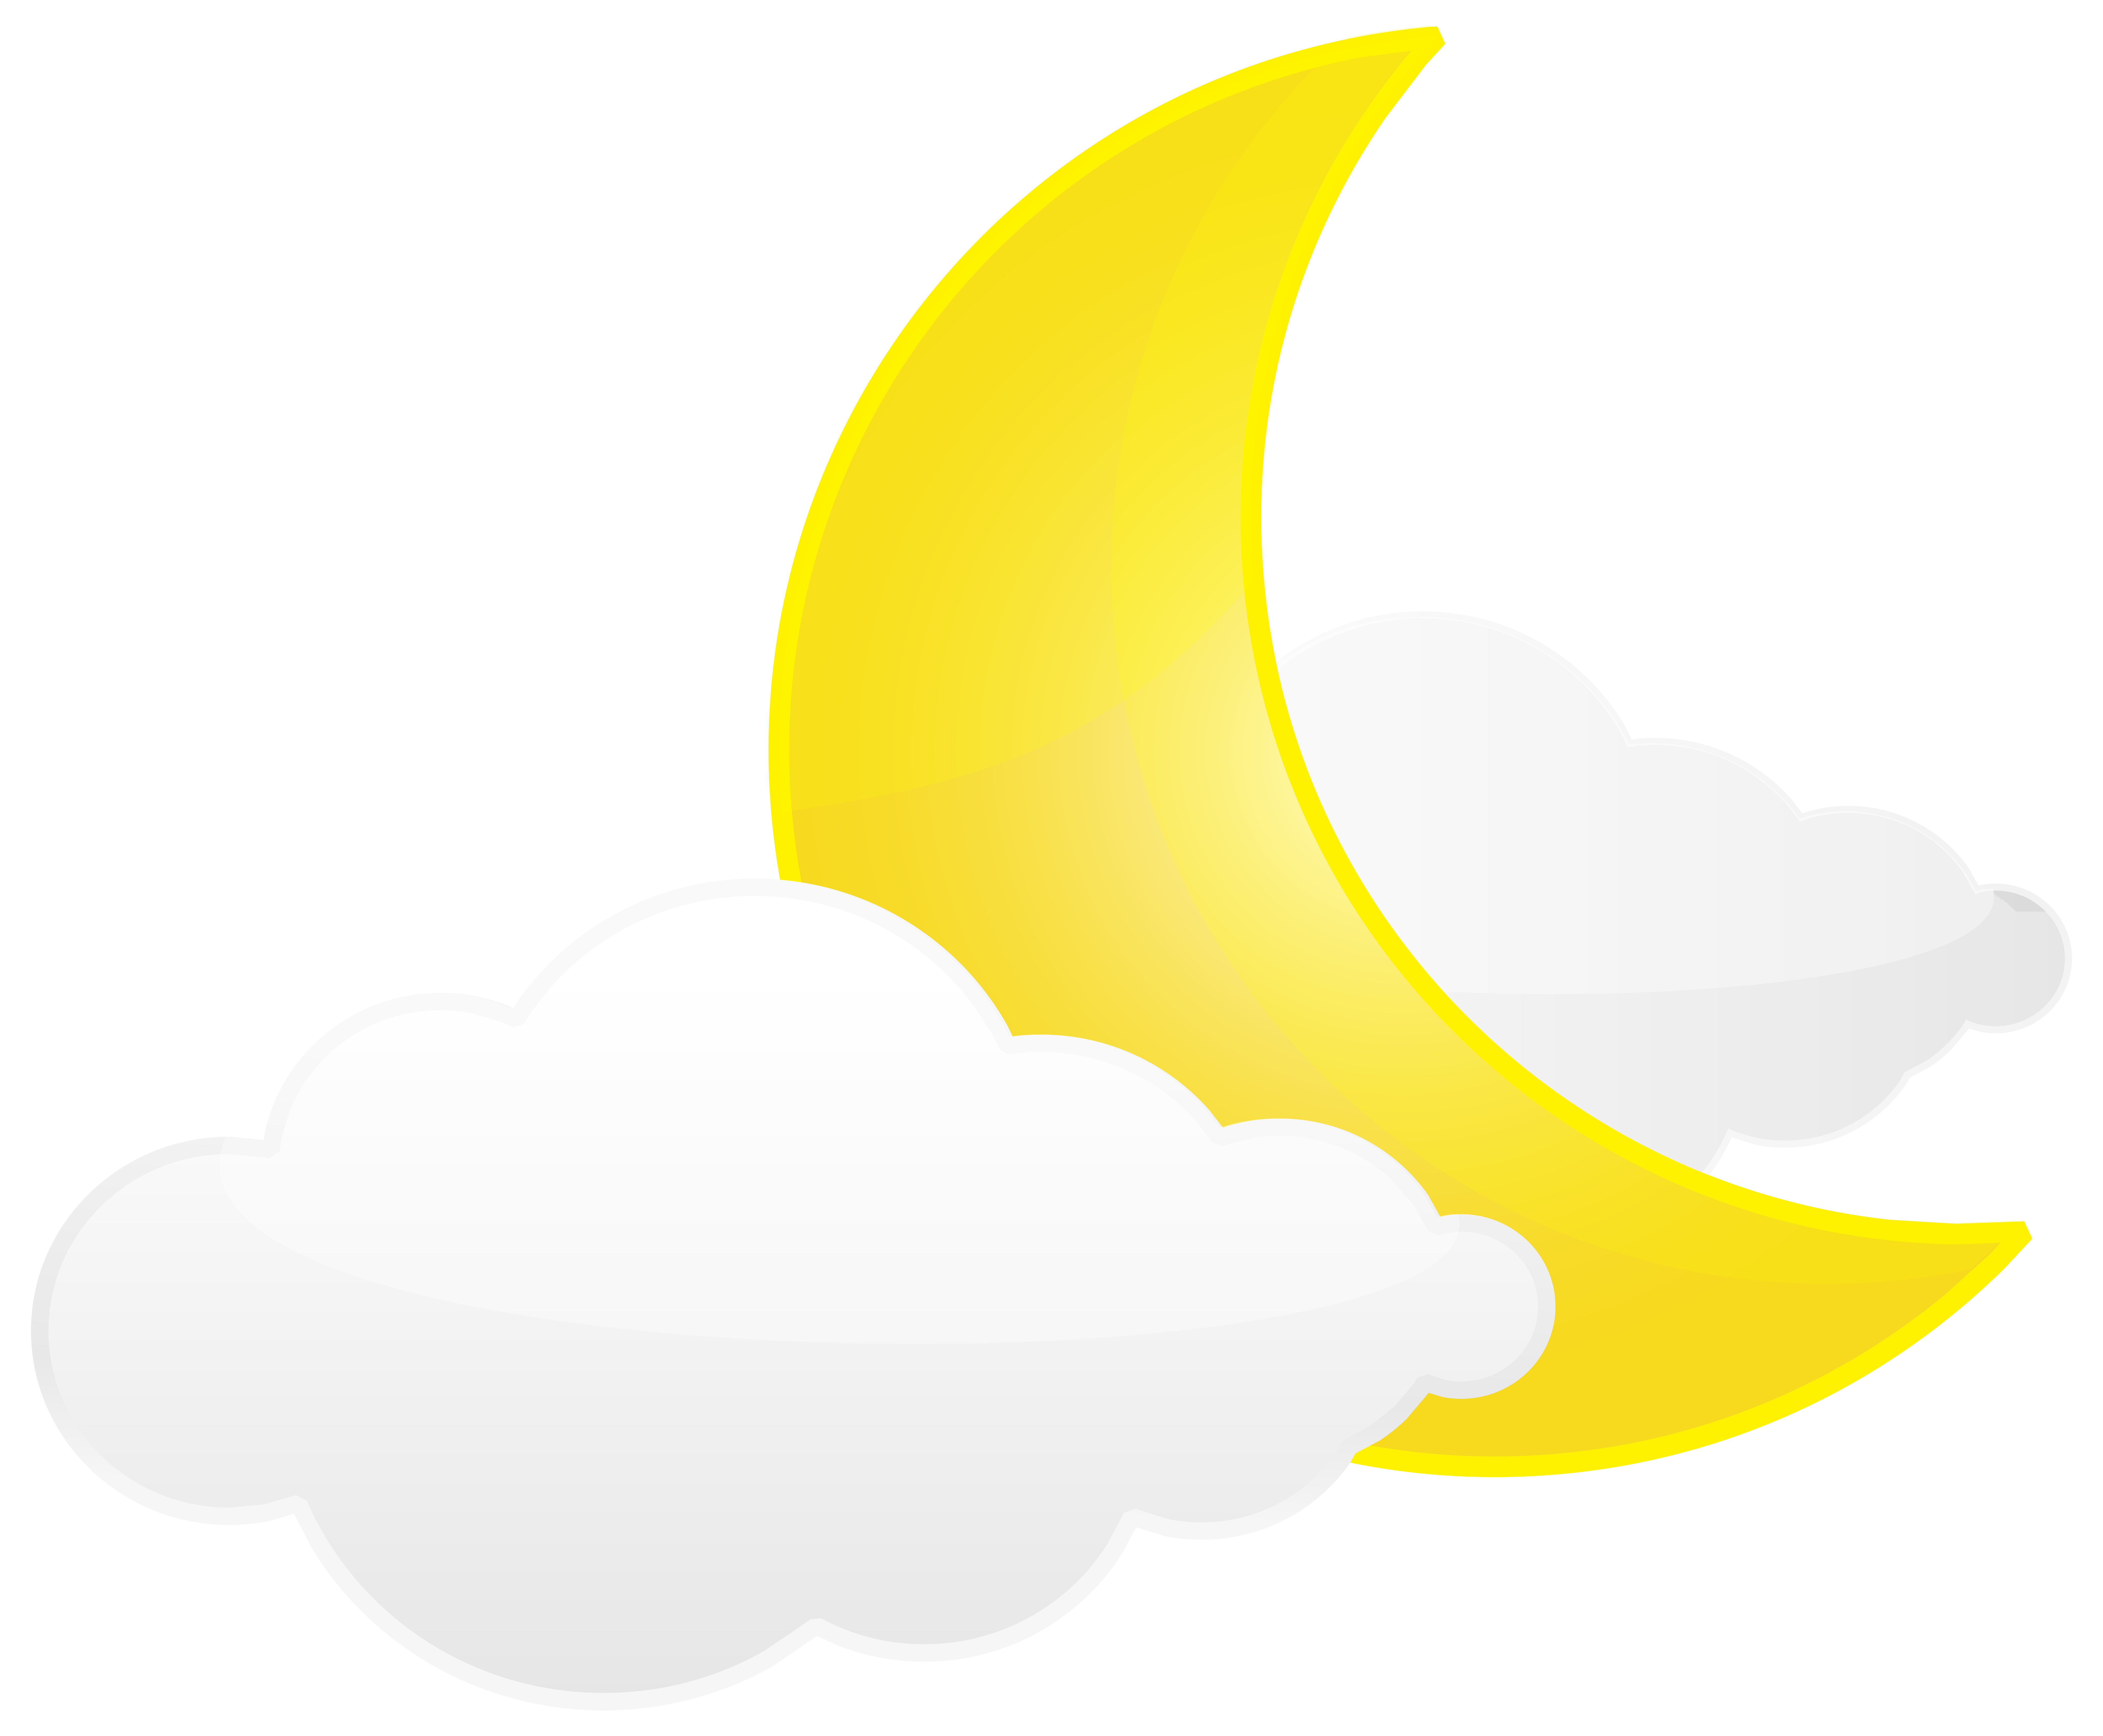 Clouds clipart clip art. Moon with png transparent